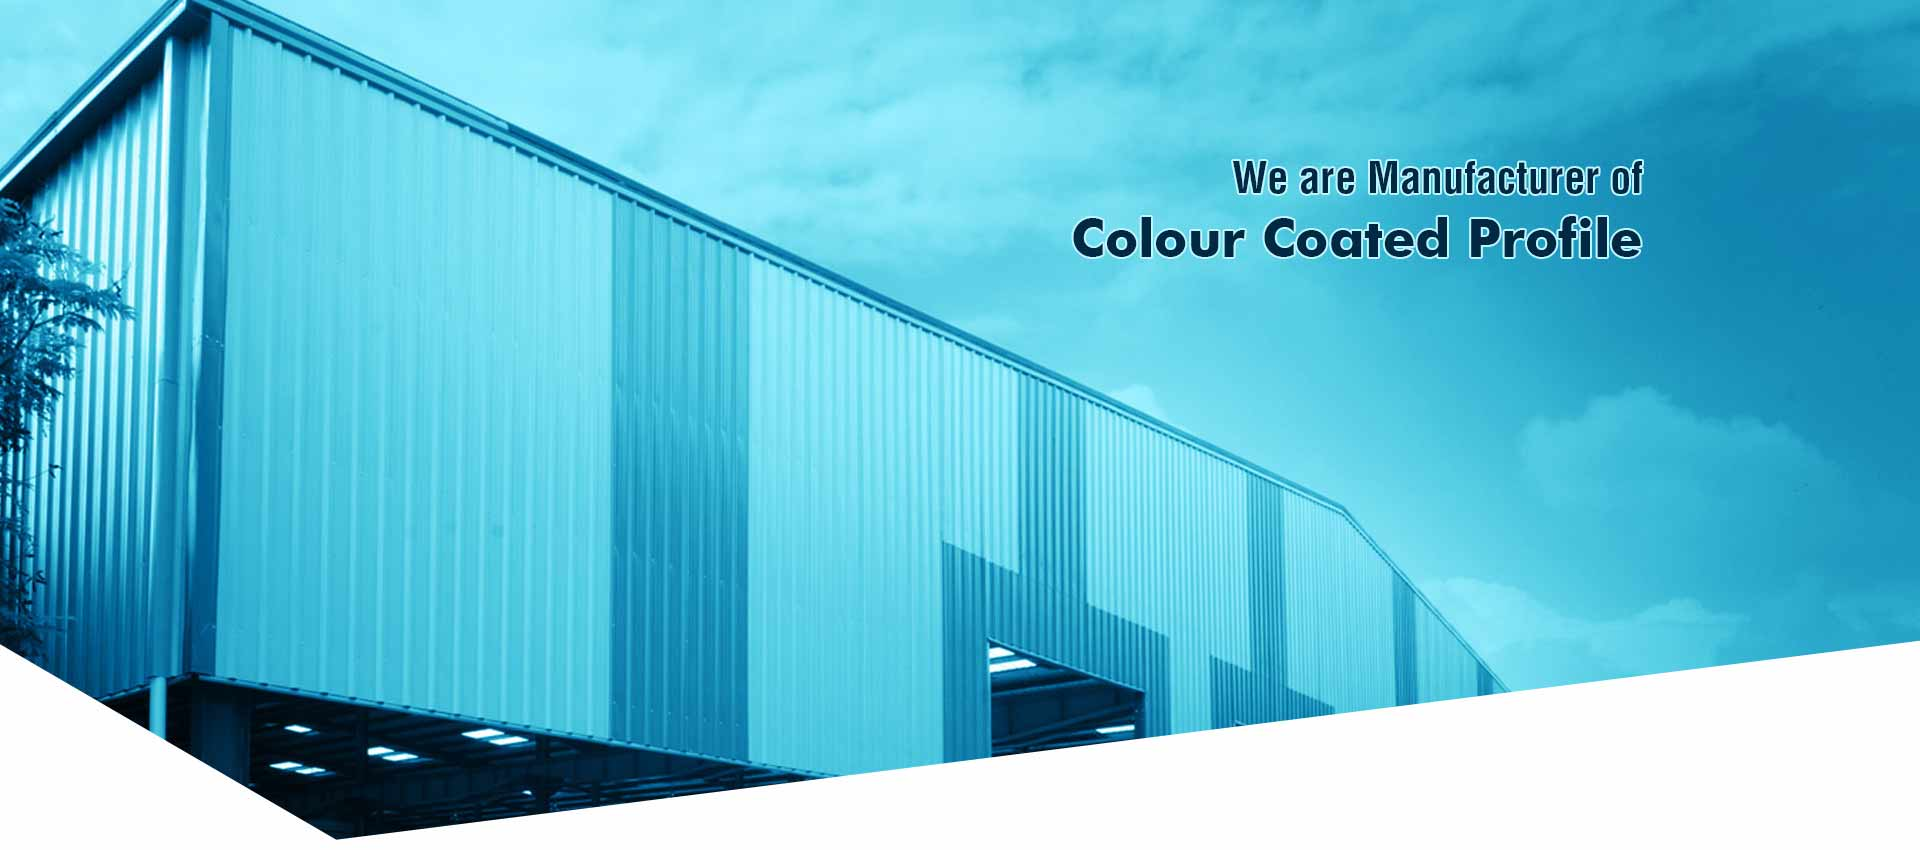 Colour Coated Coils Supplier - Get info of manufacturers, exporters, traders India